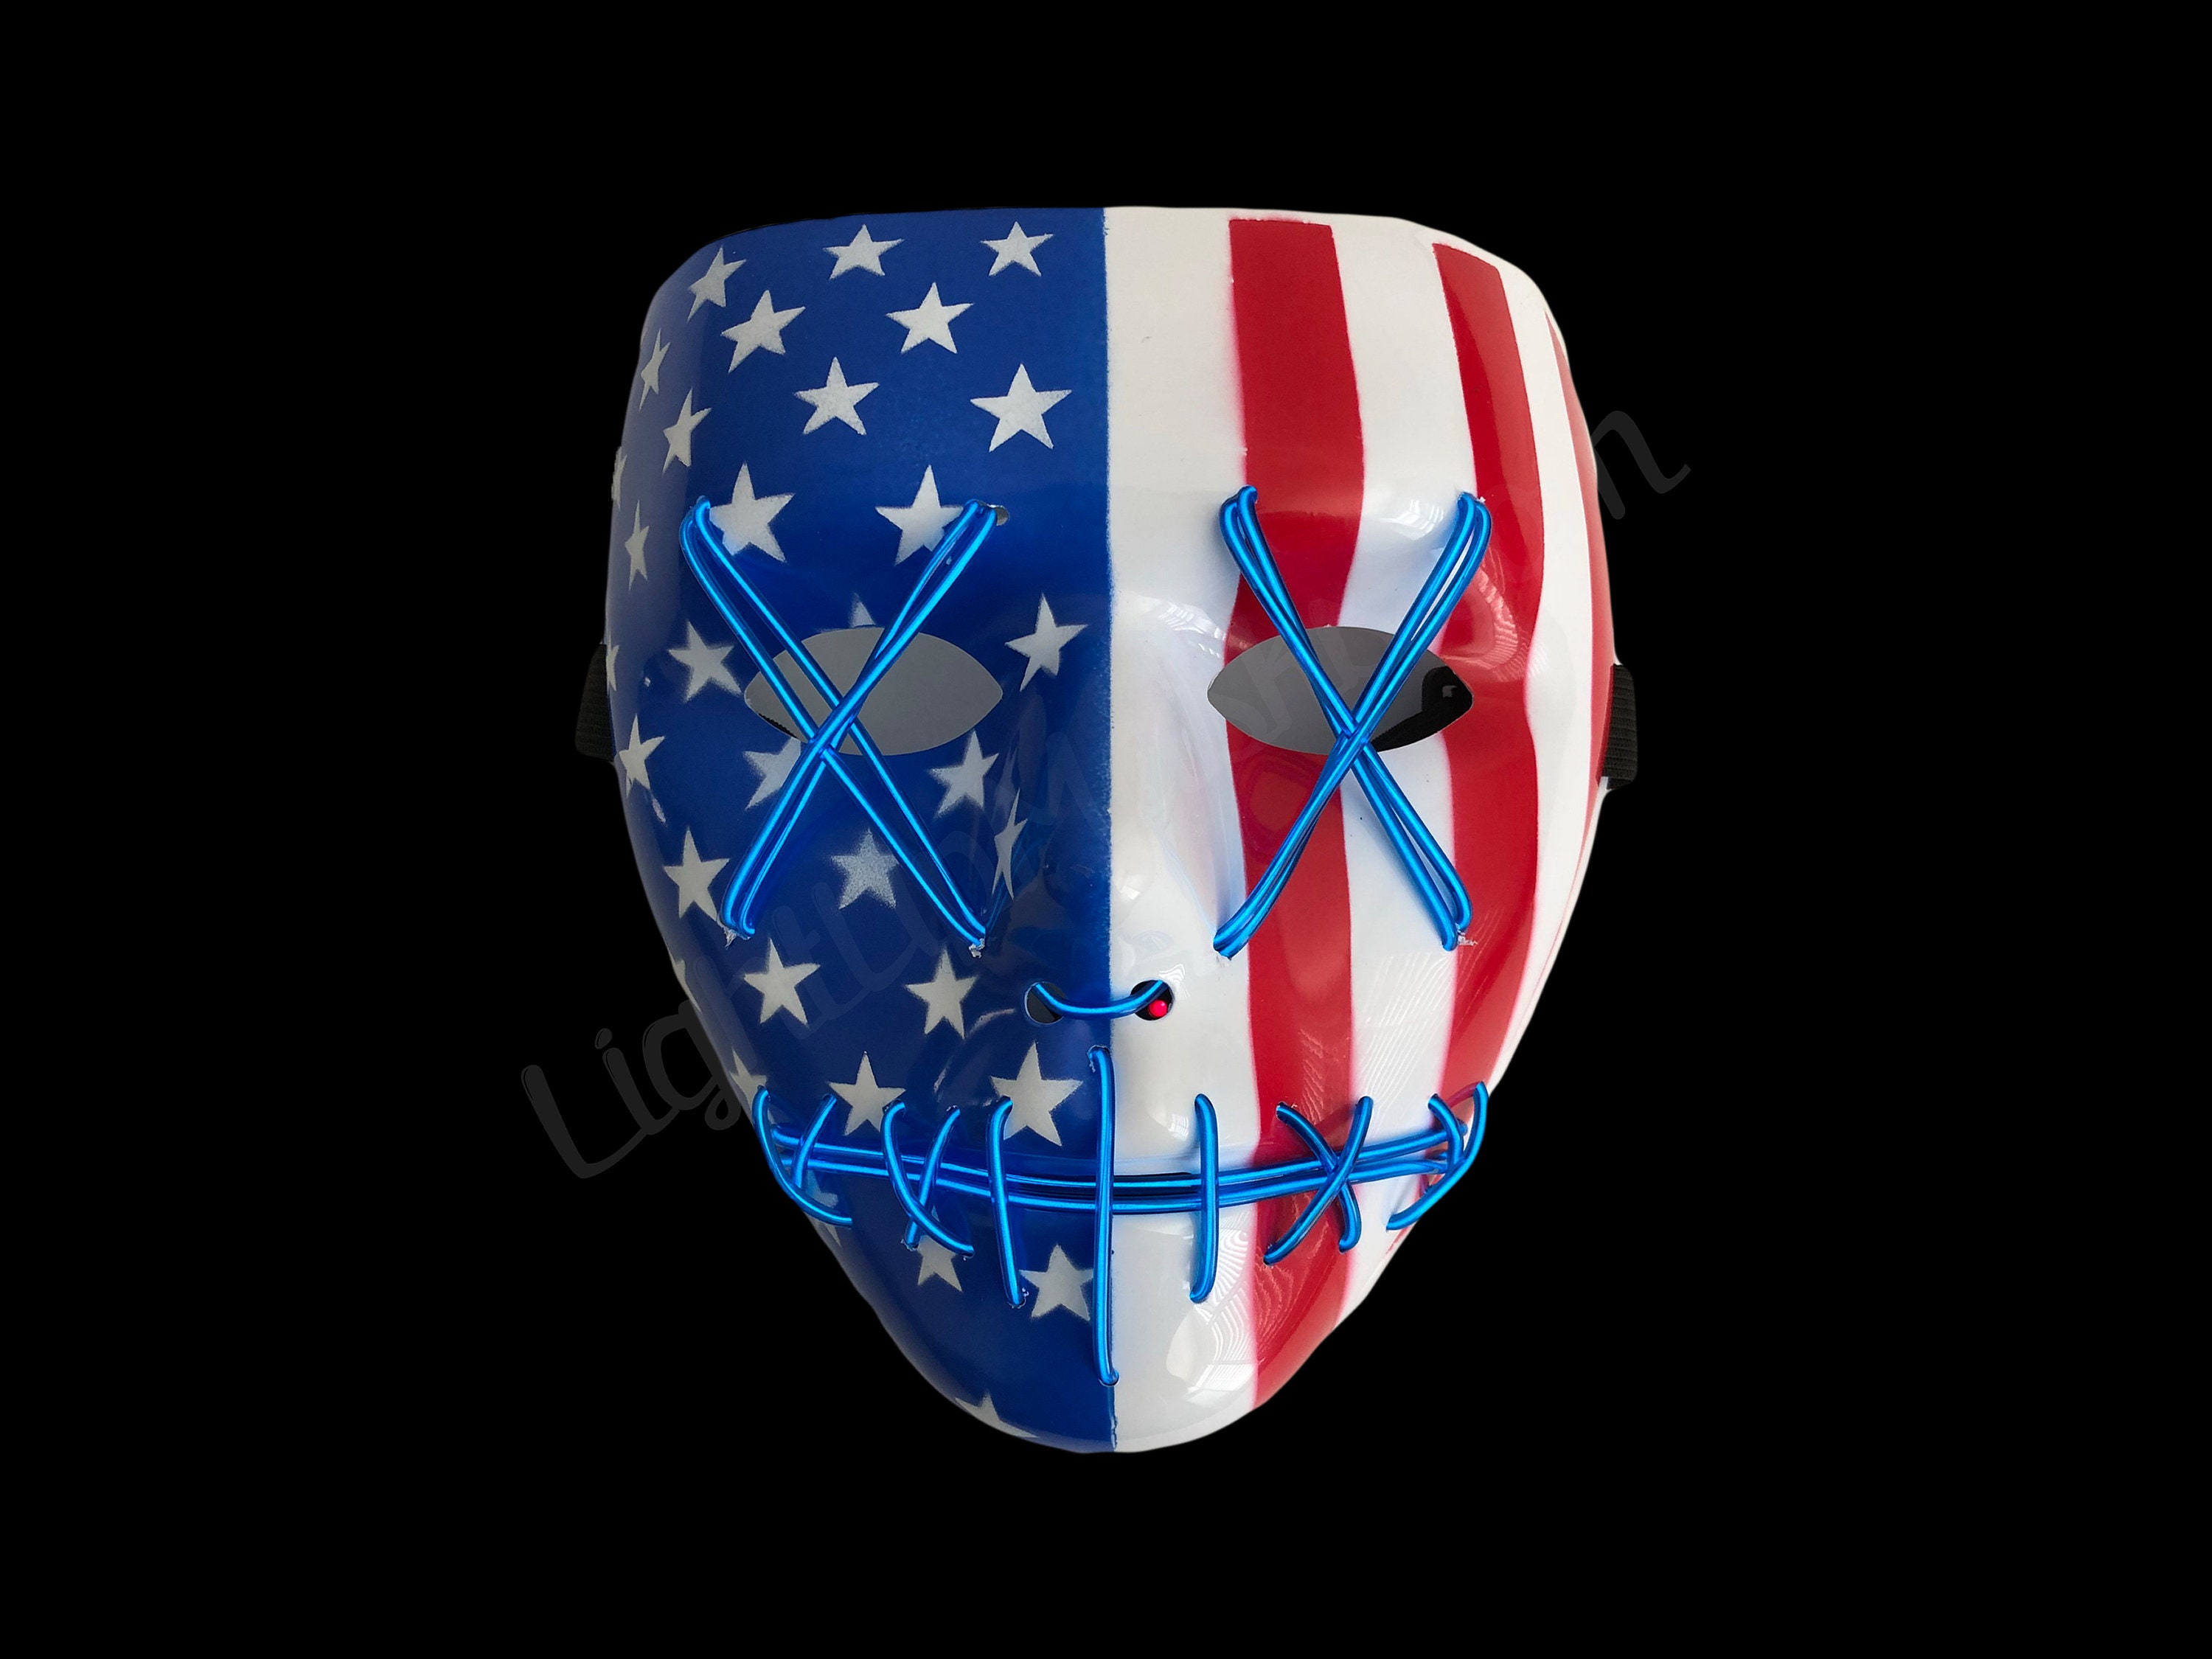 Light Up Mask Stitched American Flag 4th Of July Edition Edm Etsy